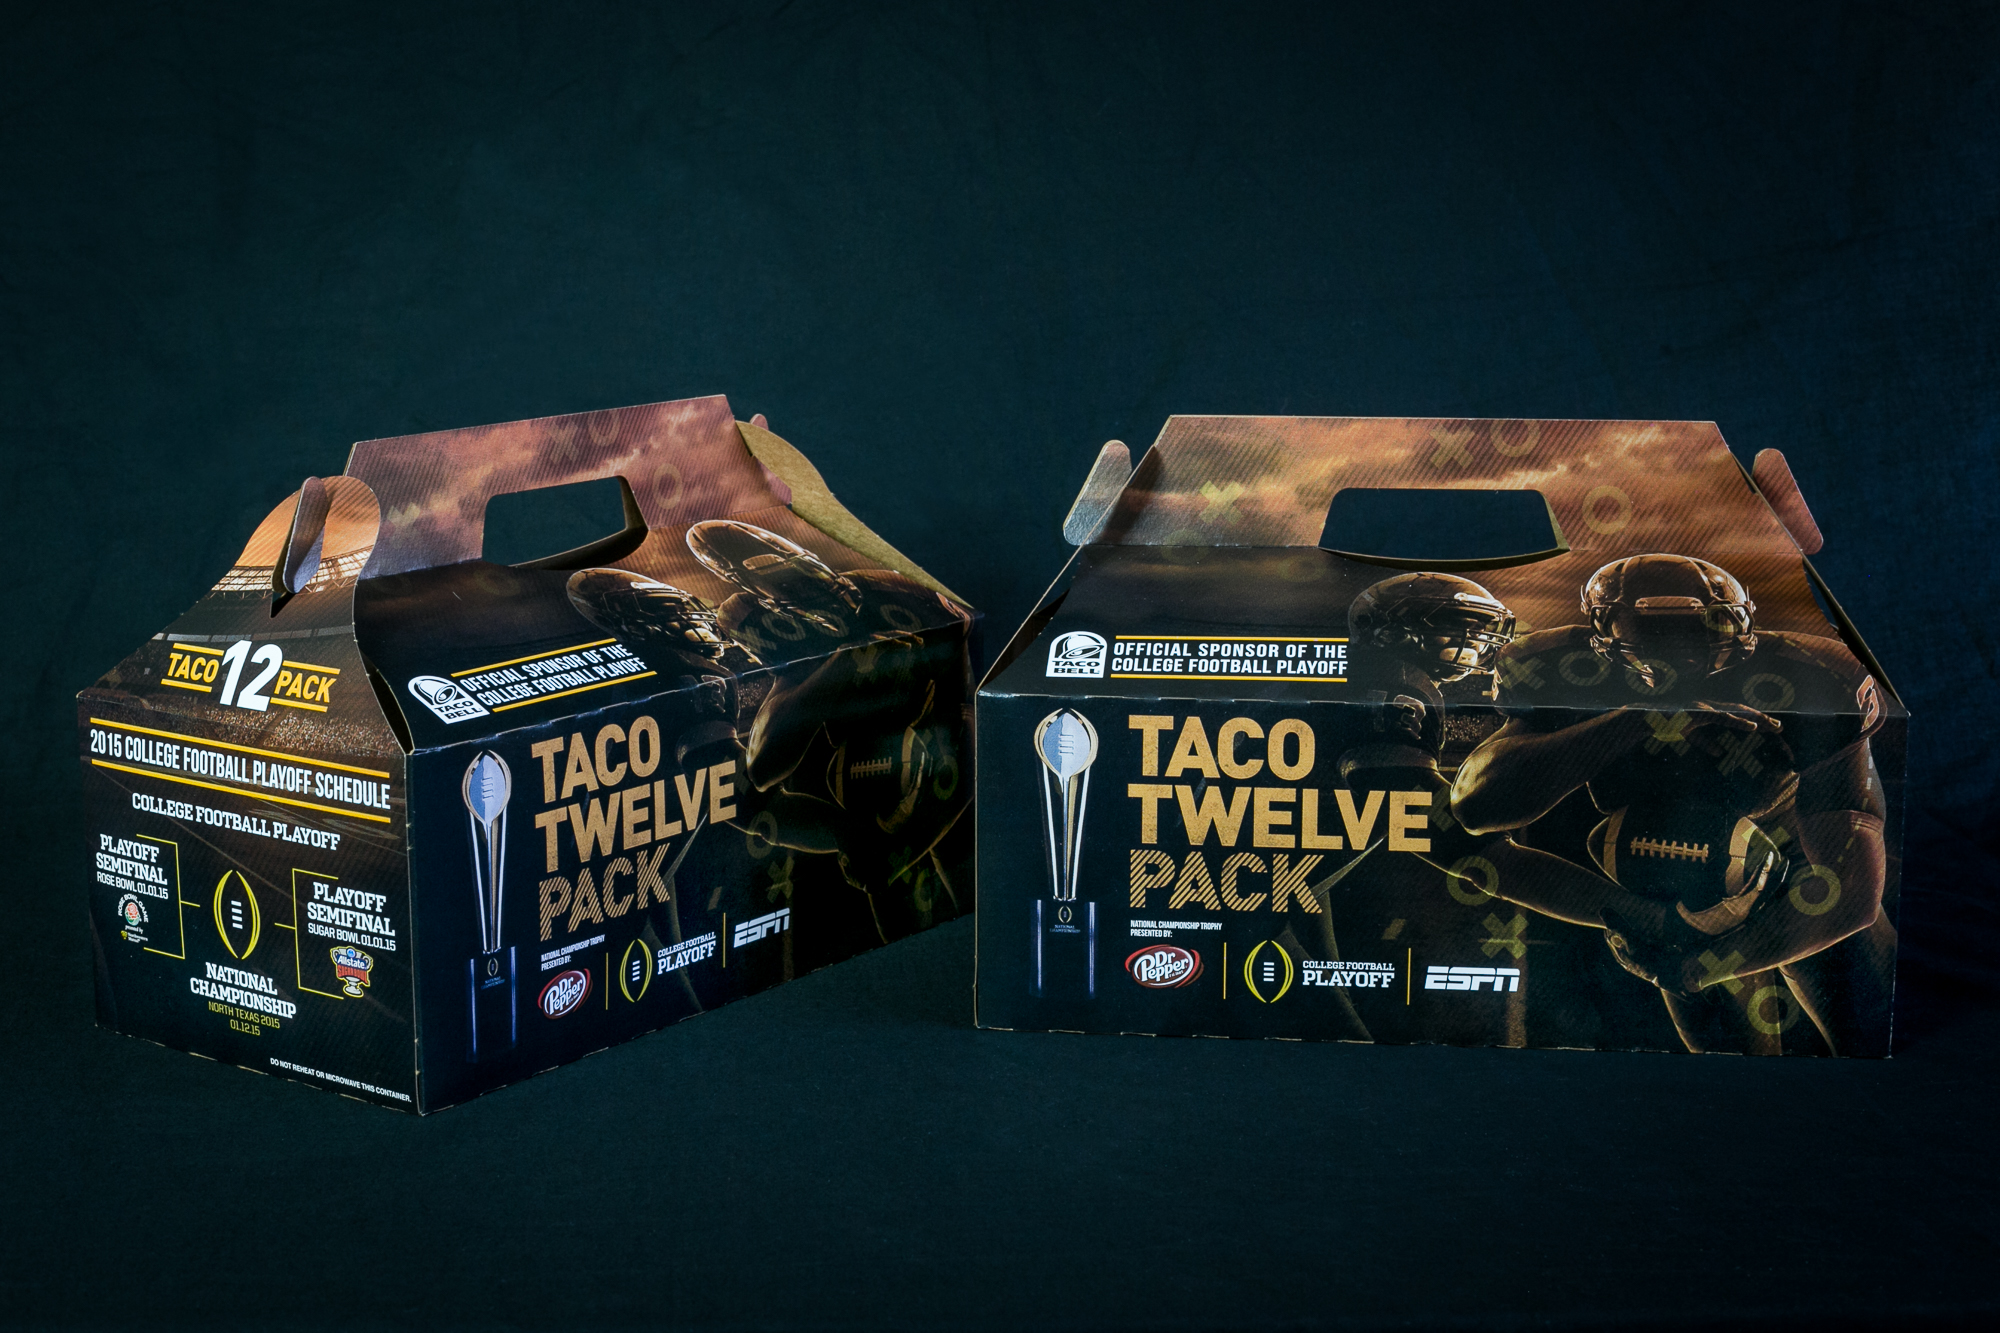 Packaging design for Taco Bell's Taco Twelve Pack. This box was being sold during the College Football Playoffs.